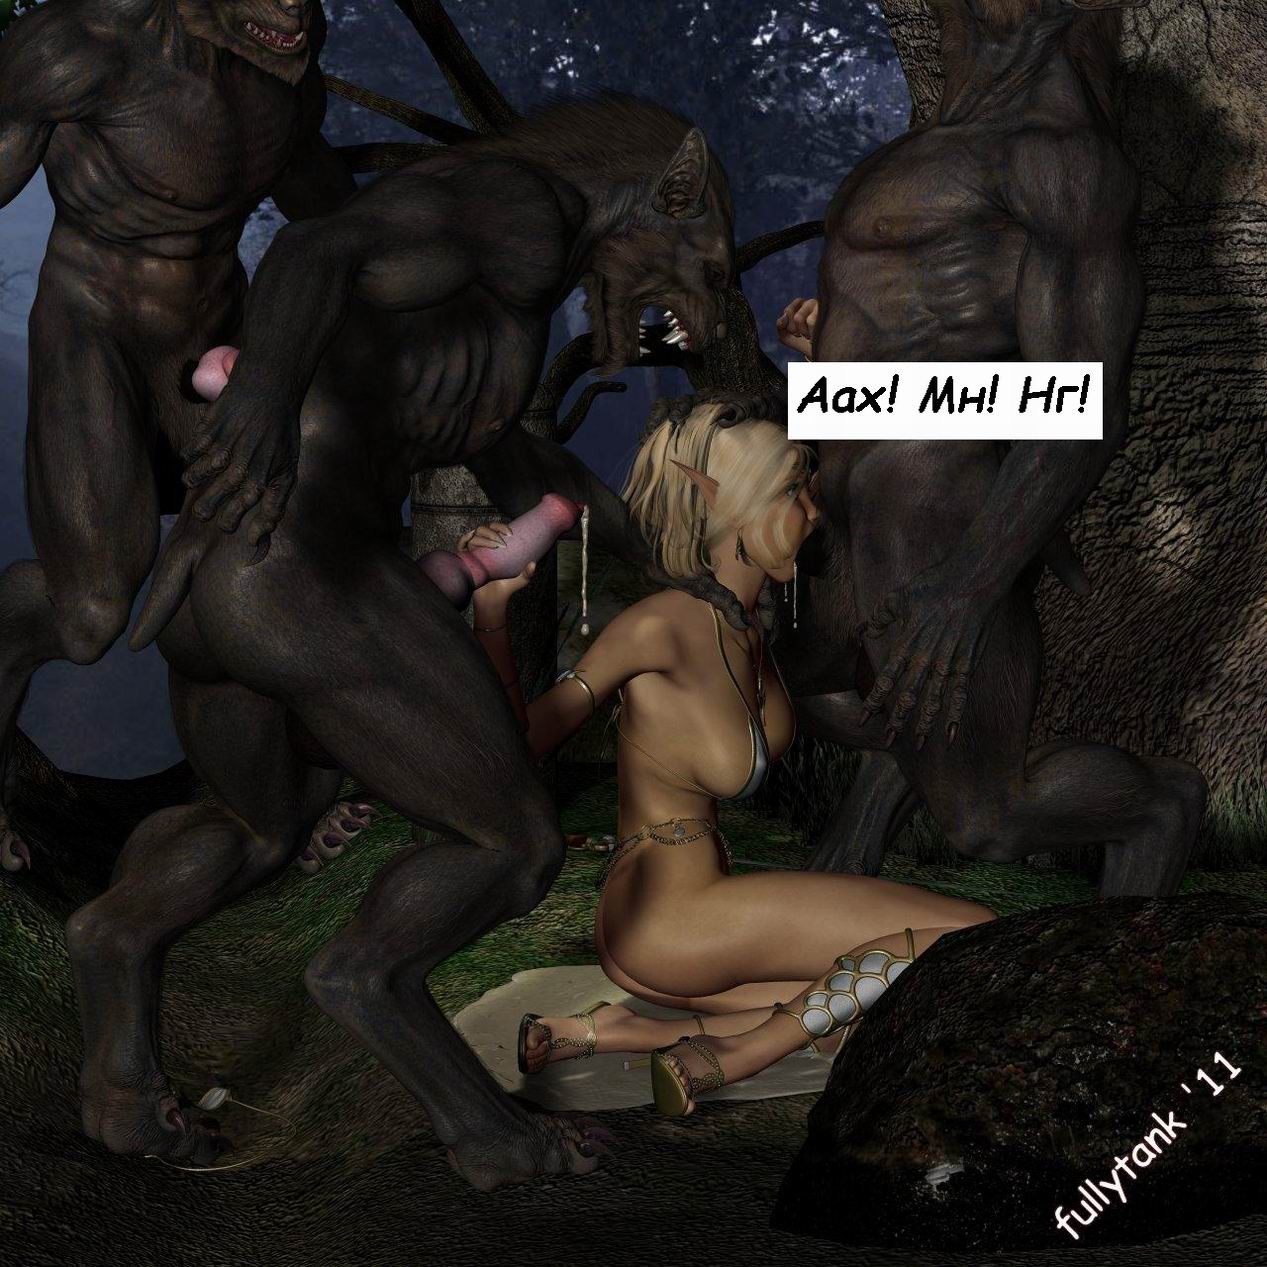 Werewolf sex art nudes photo